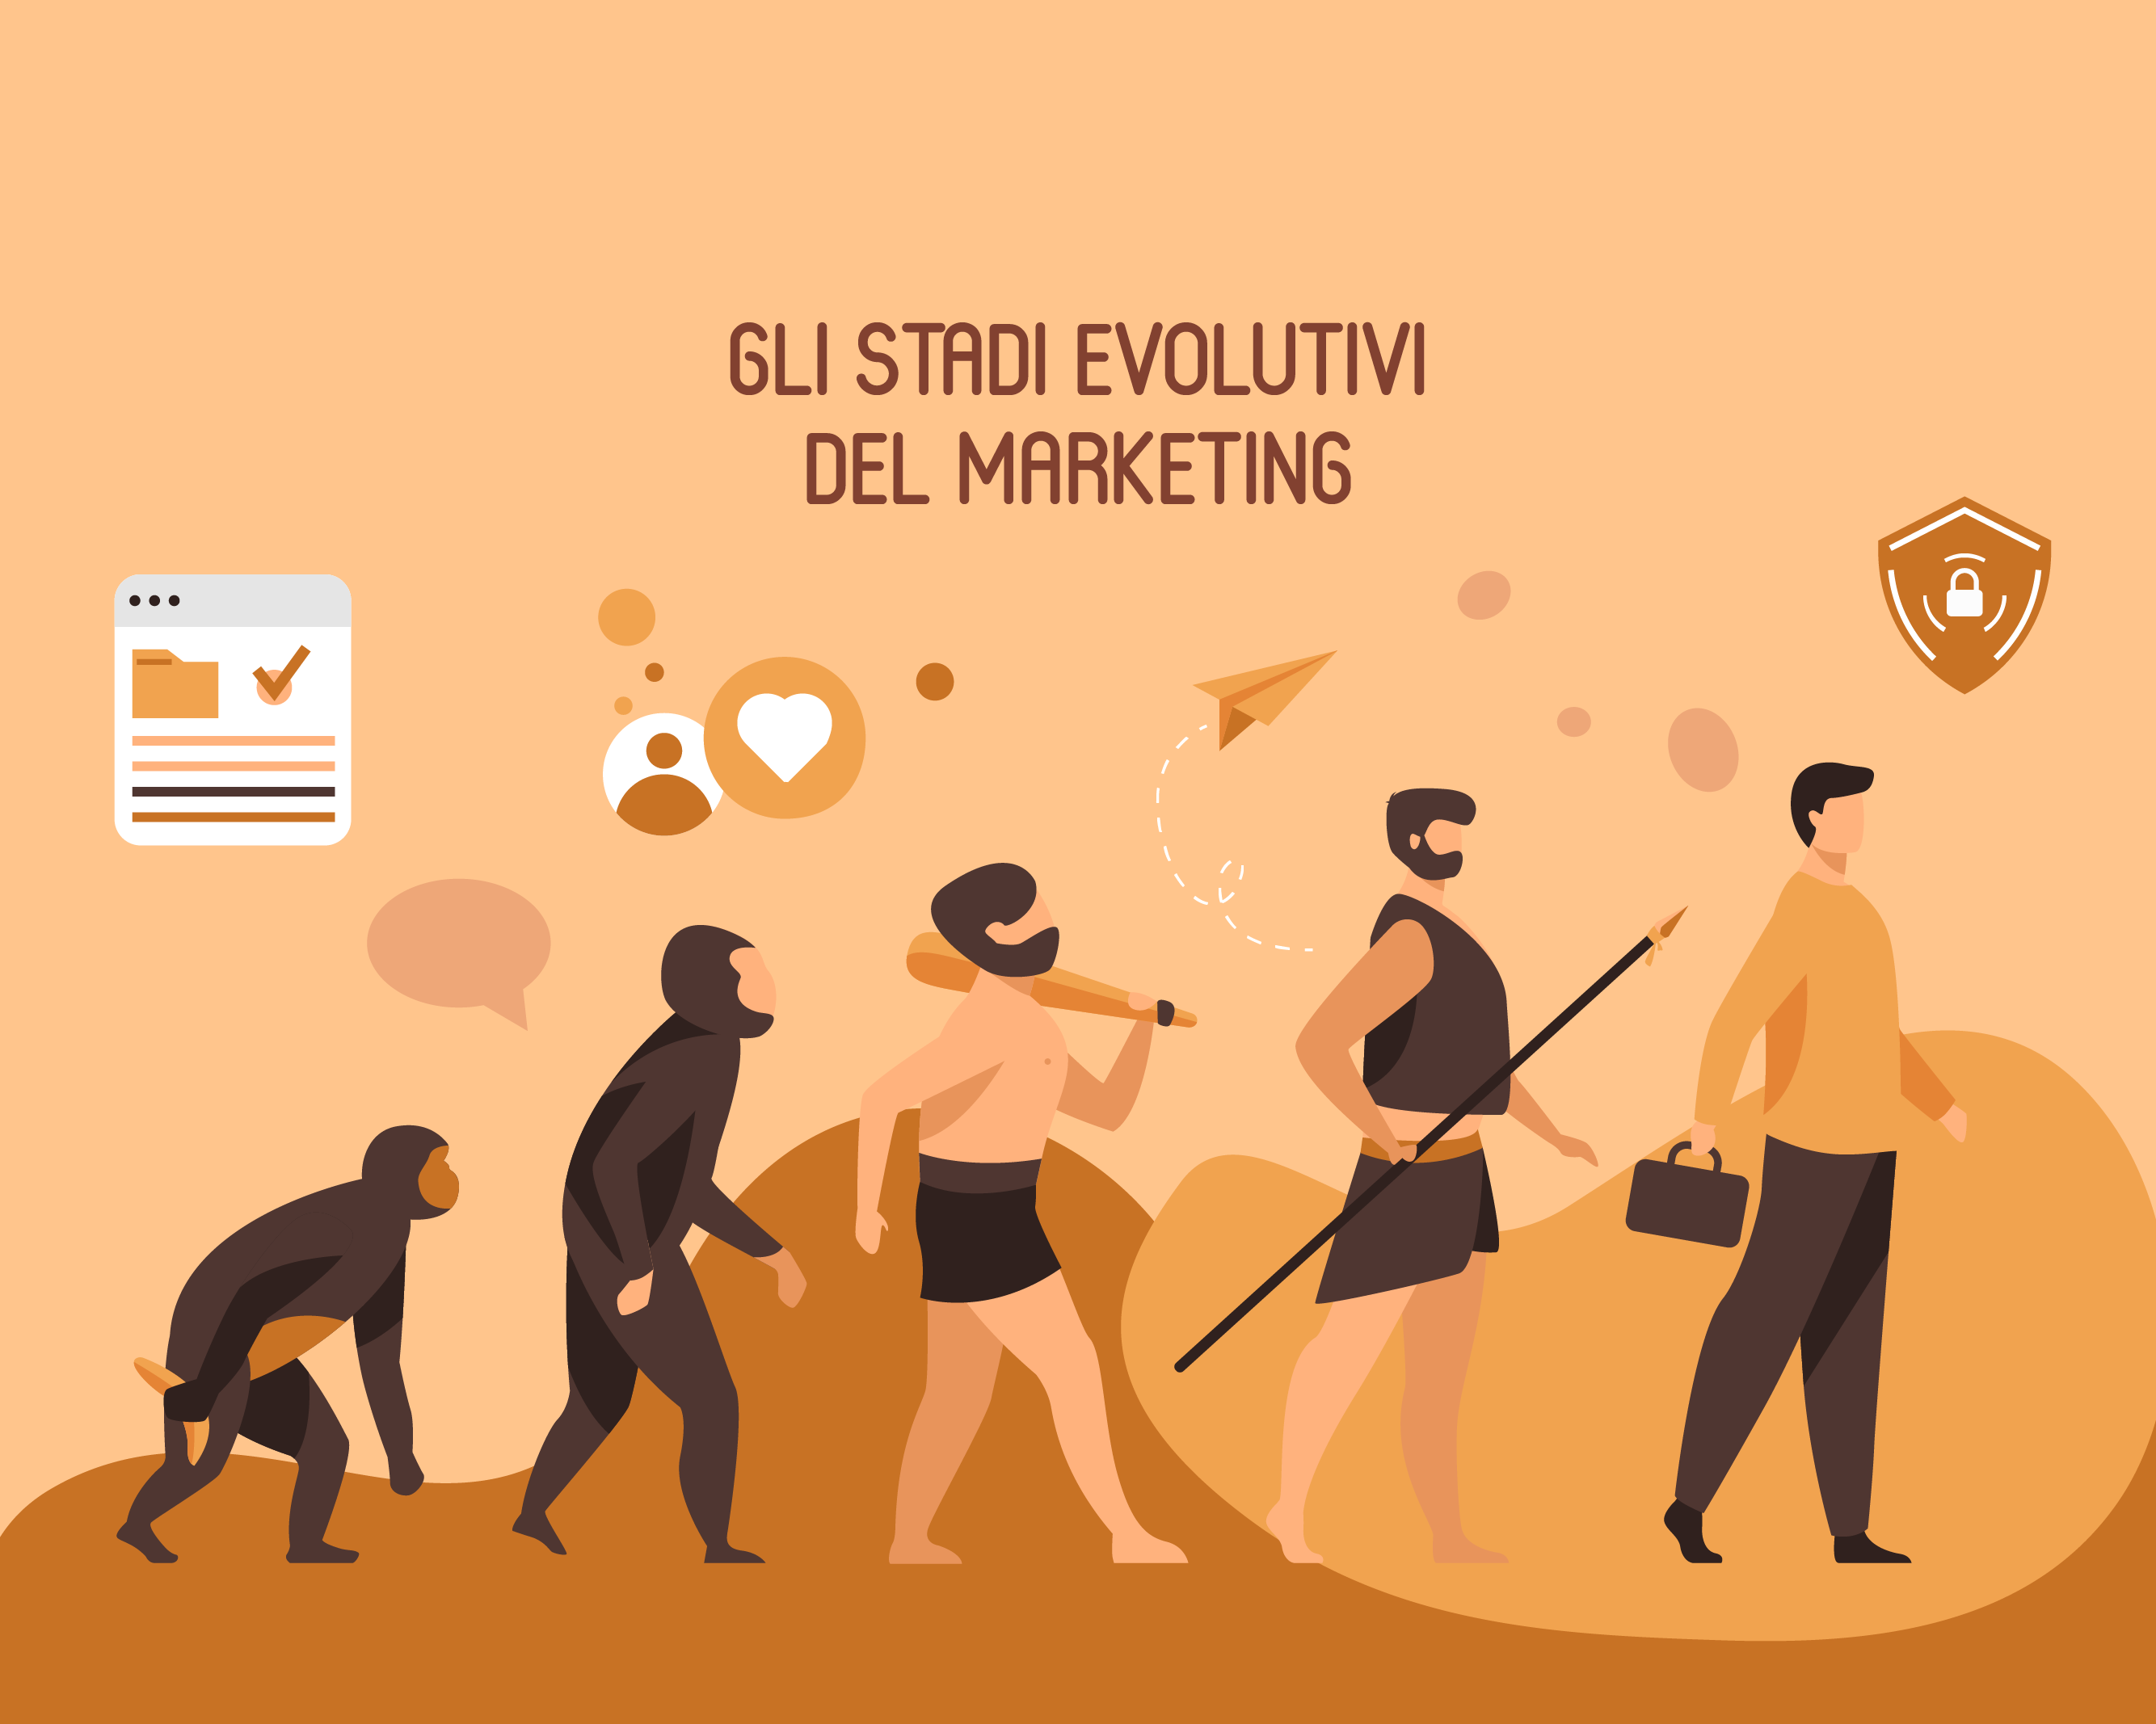 Gli stadi evolutivi del marketing